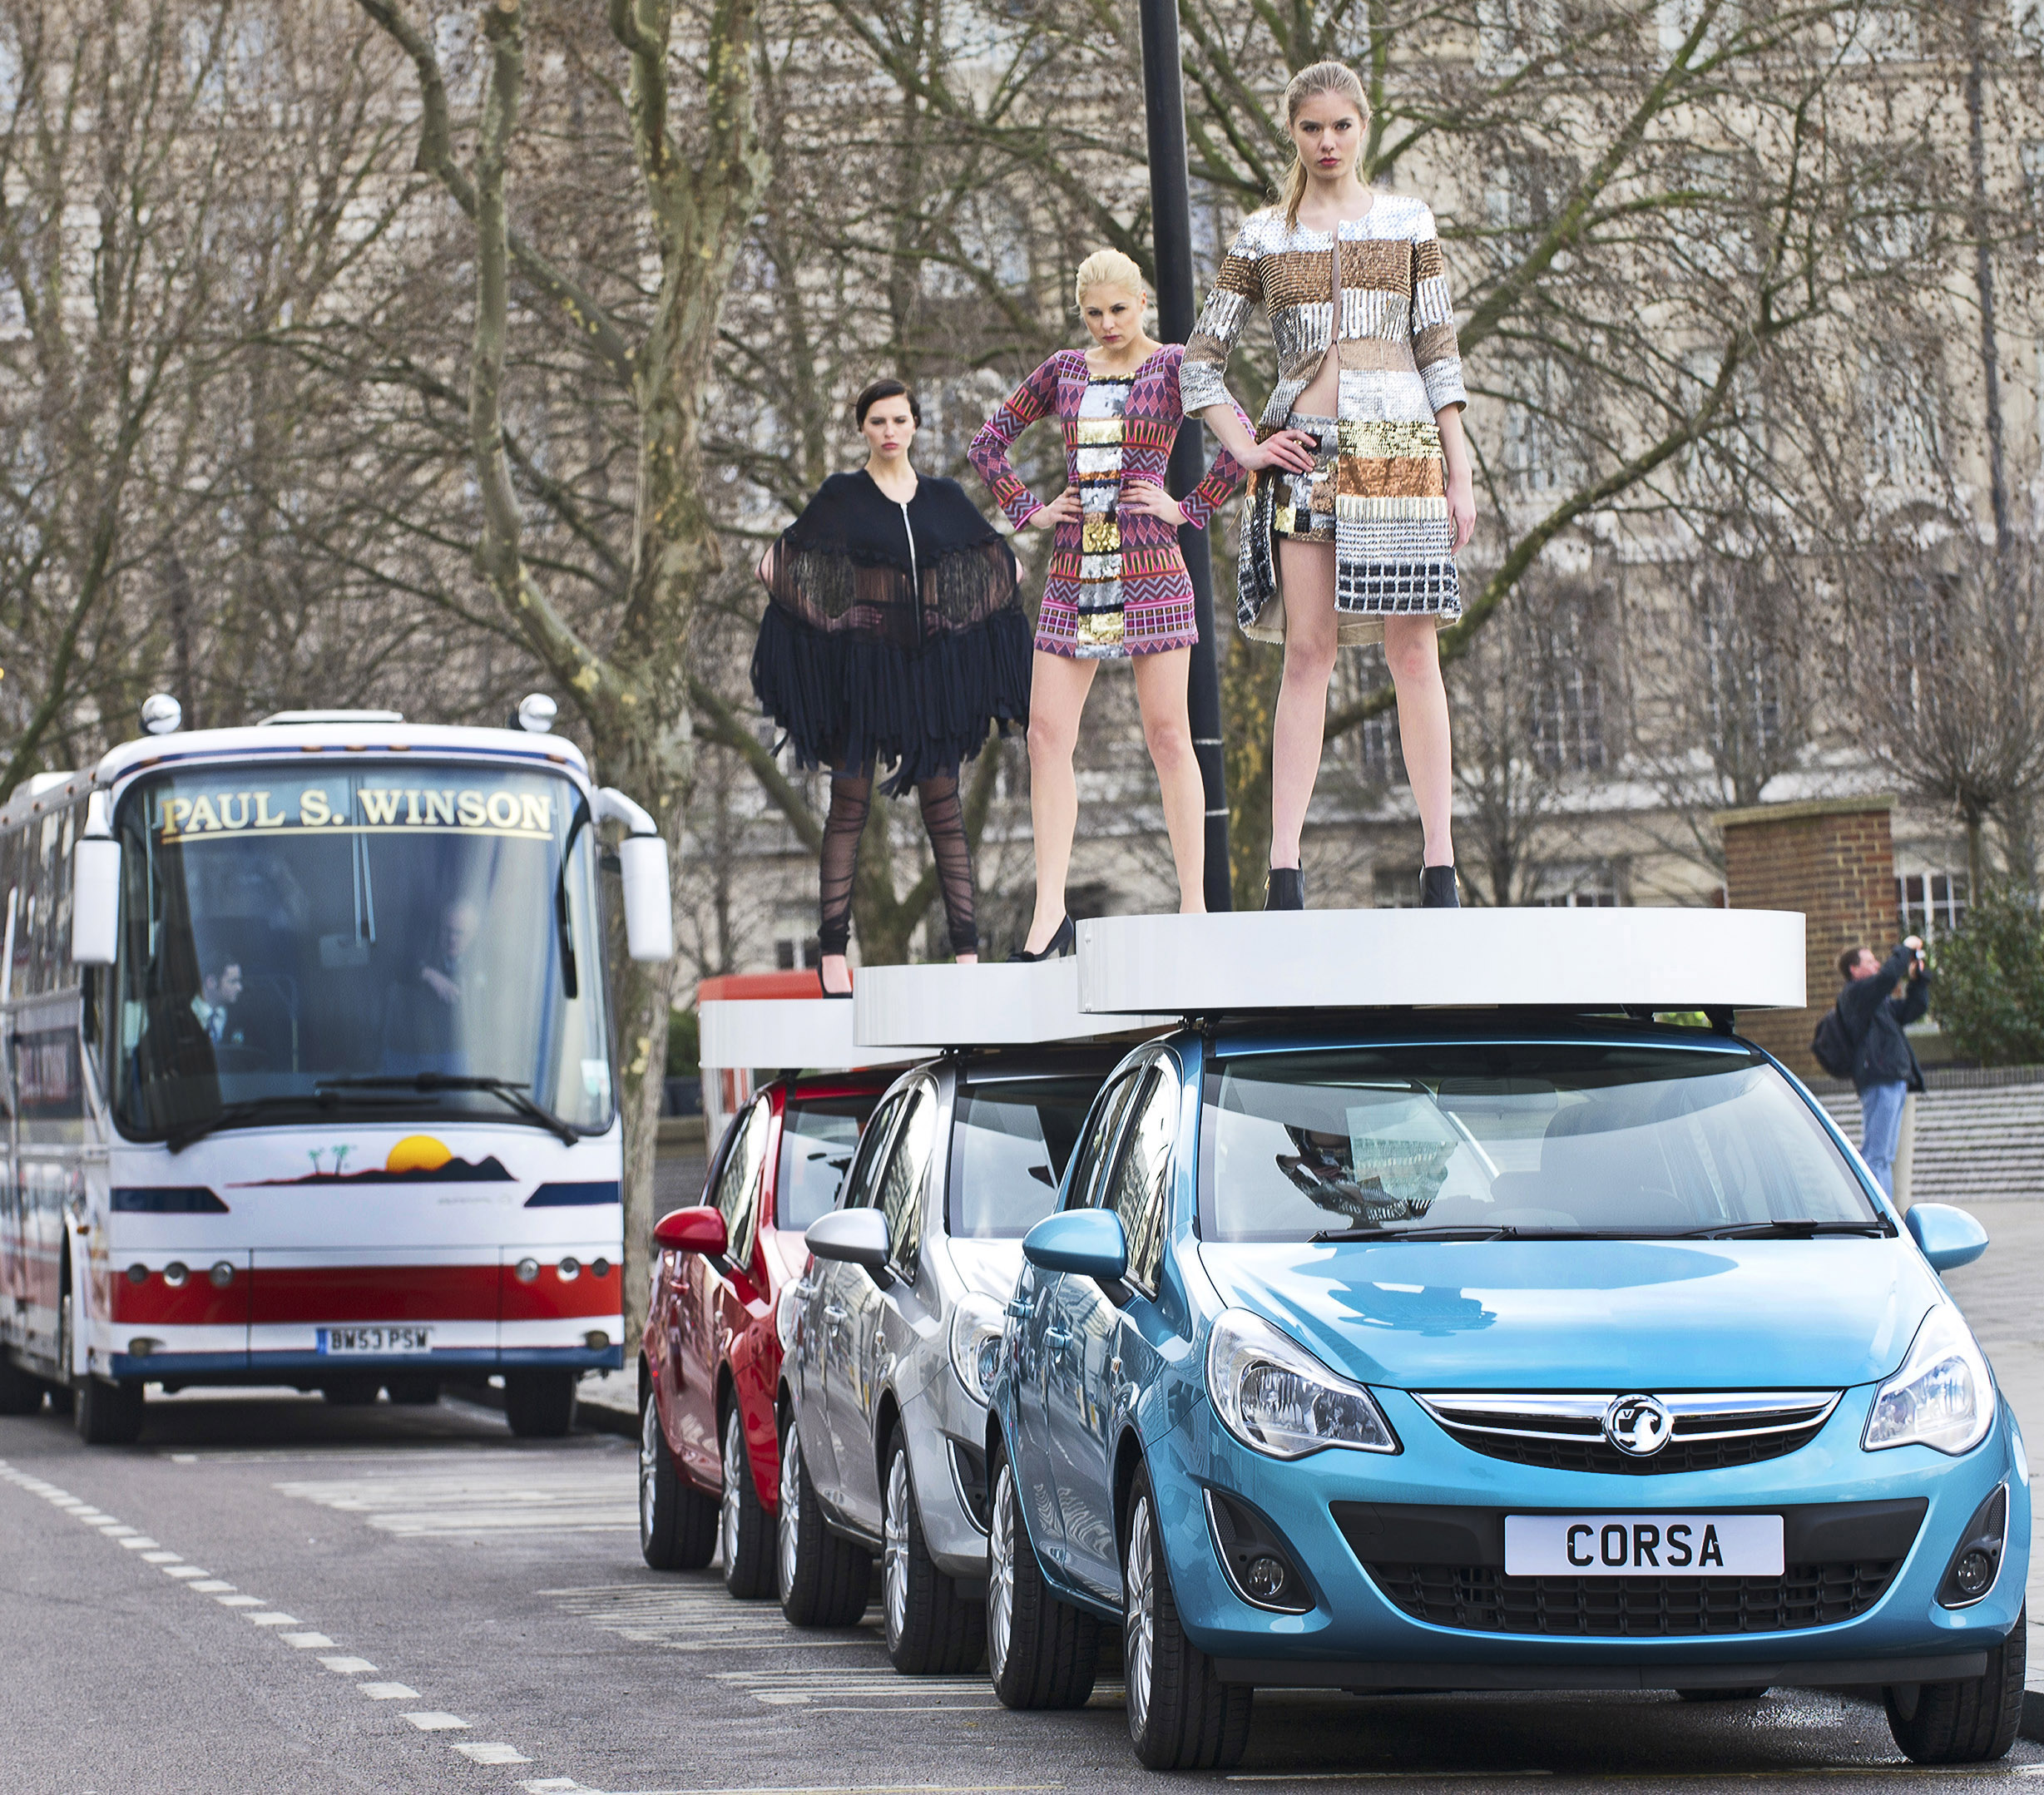 Models mount motors on world's first car-walk